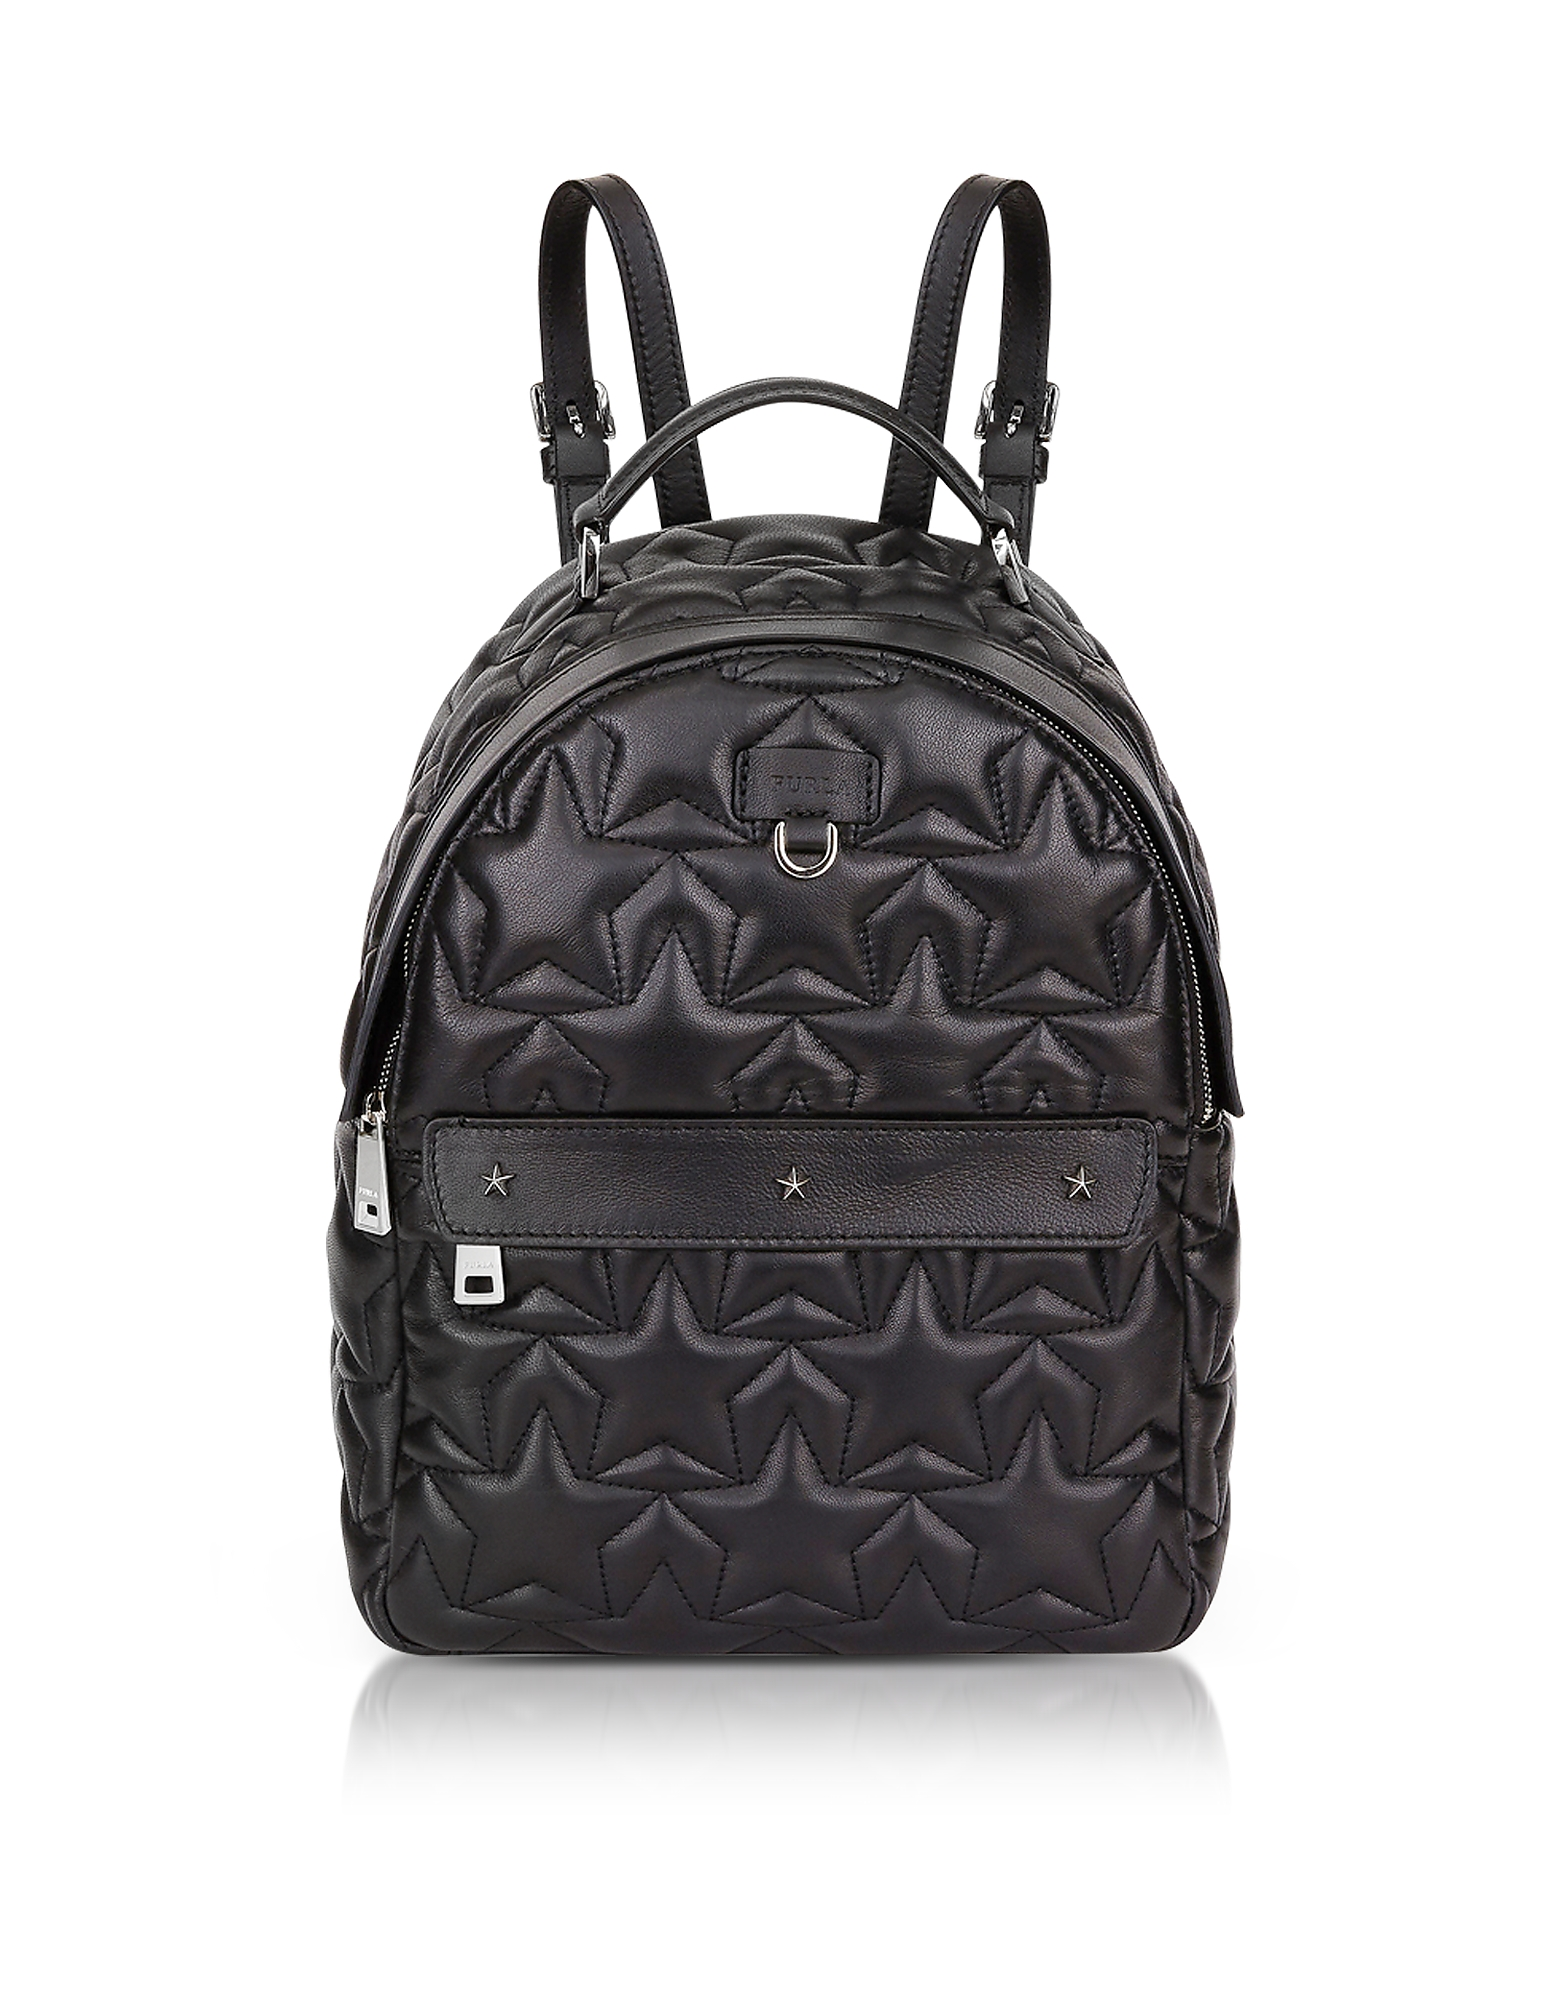 Black Star Quilted Leather Favola Small Backpack